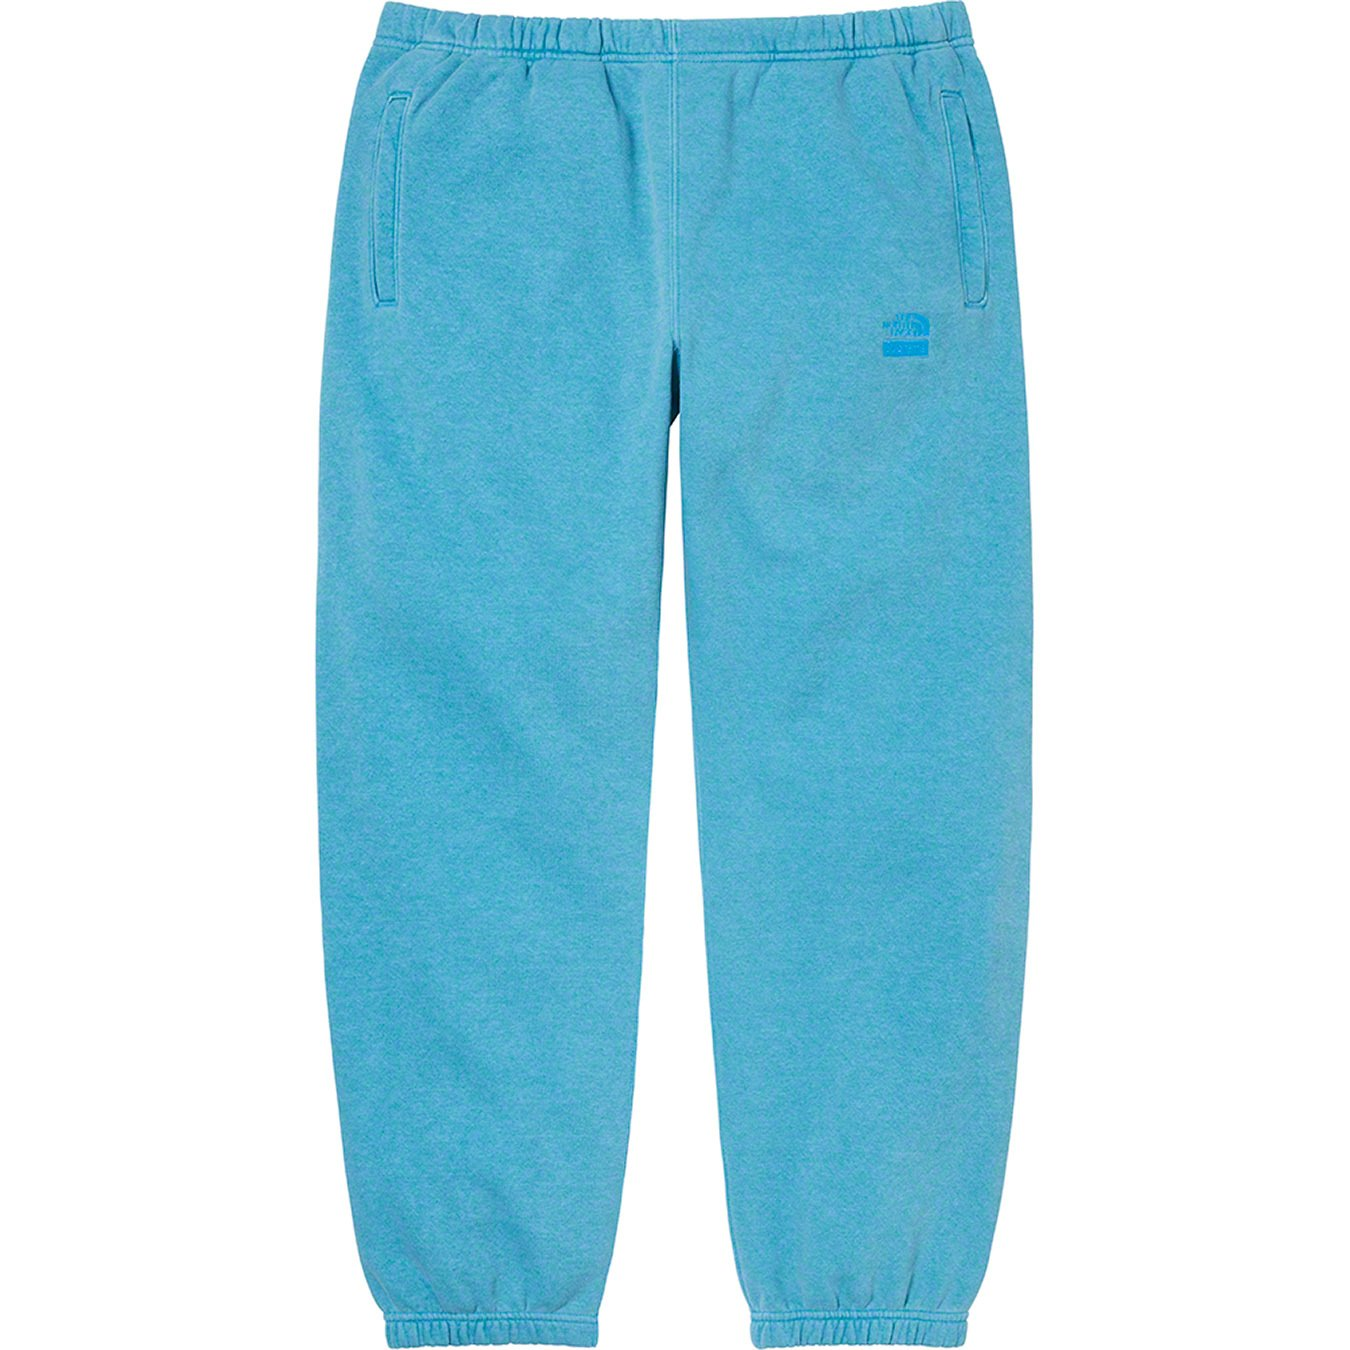 supreme-the-north-face-summit-series-outer-tape-seam-collection-release-21ss-20210529-week14-pigment-printed-sweatpant